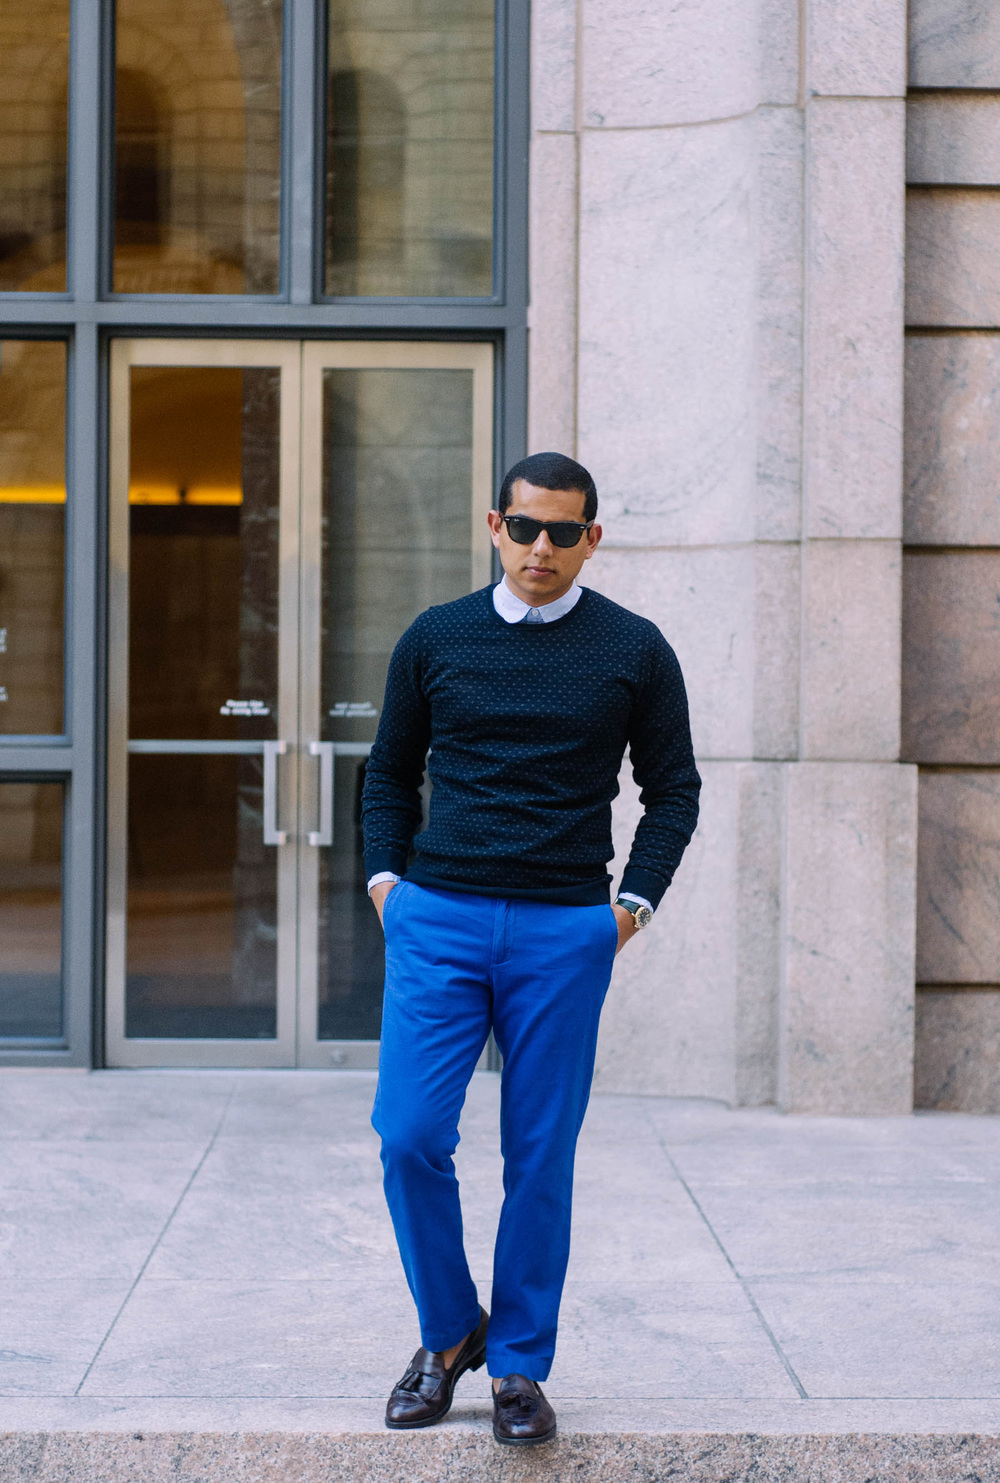 Sweater: H&M (similar  here ) | Pants: J.Crew (similar  here ) | Shirt:  J.Crew  | Shoes: Alden (similar  here ) | Sunglasses:  RayBan  | Watch:  Shinola